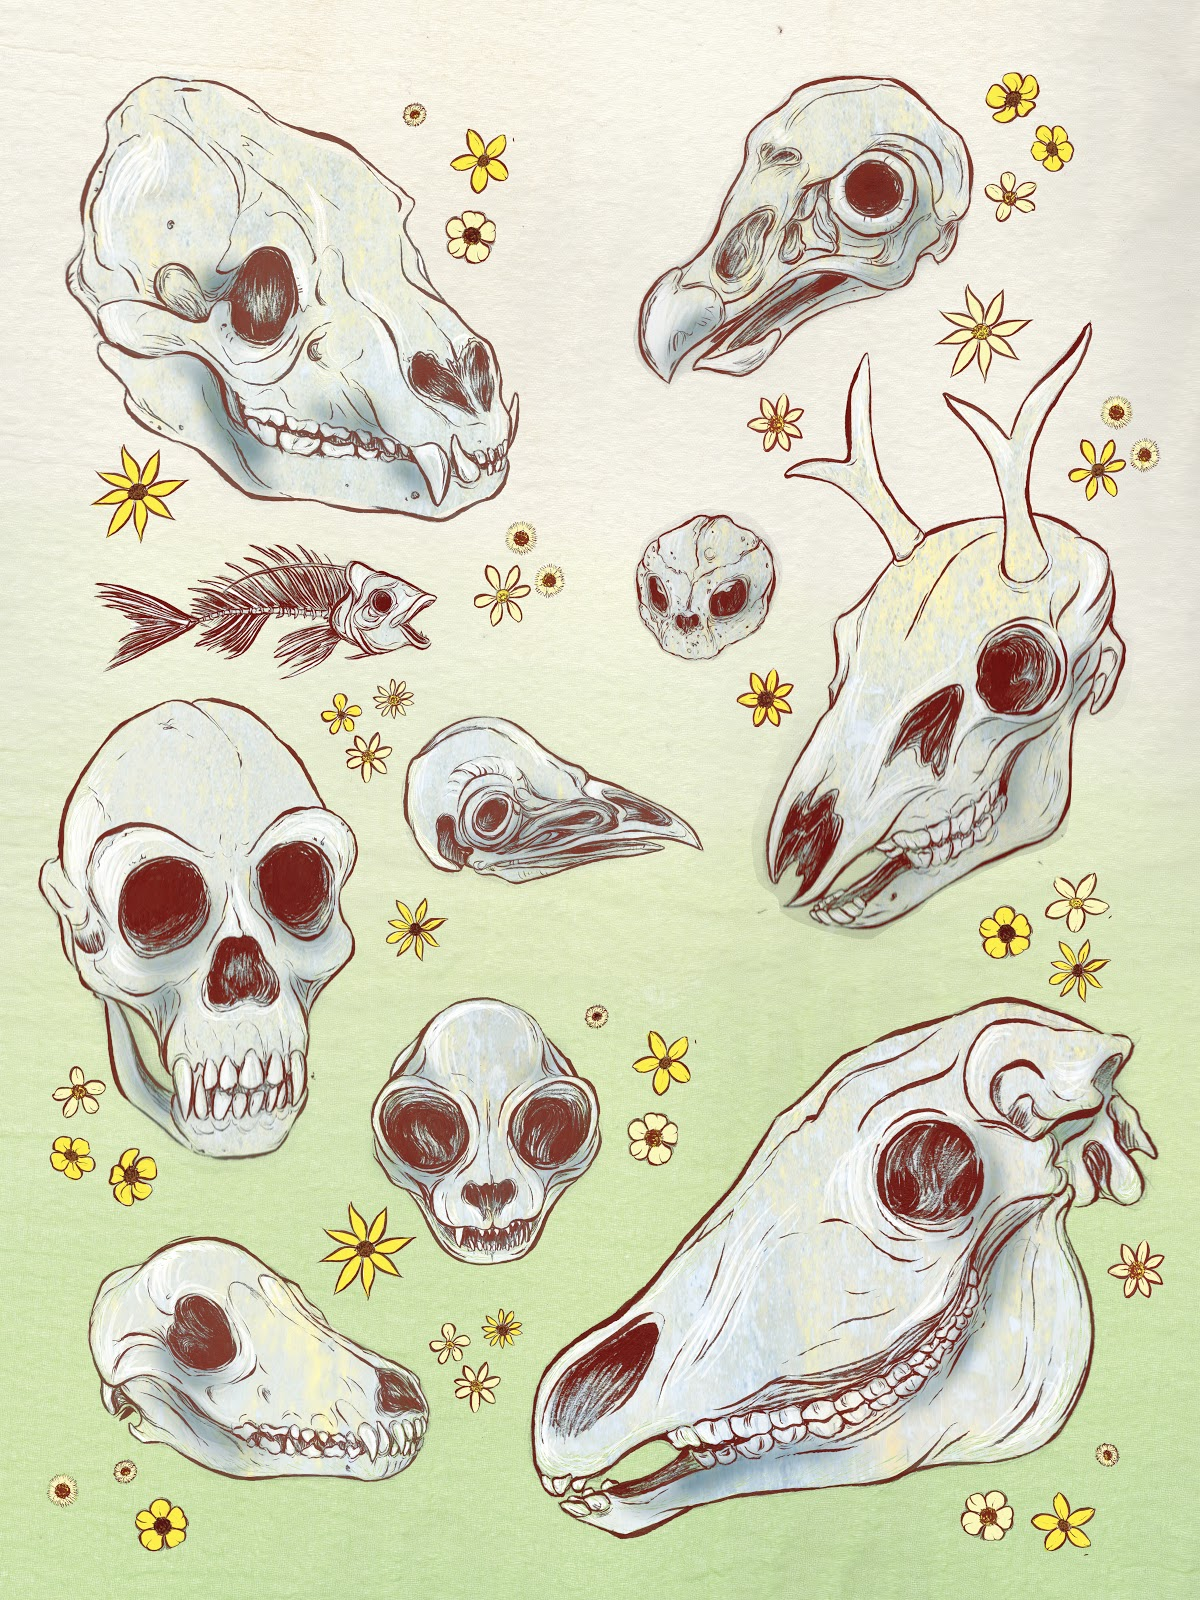 Animal skulls and flowers. RobinAnnWren.2013